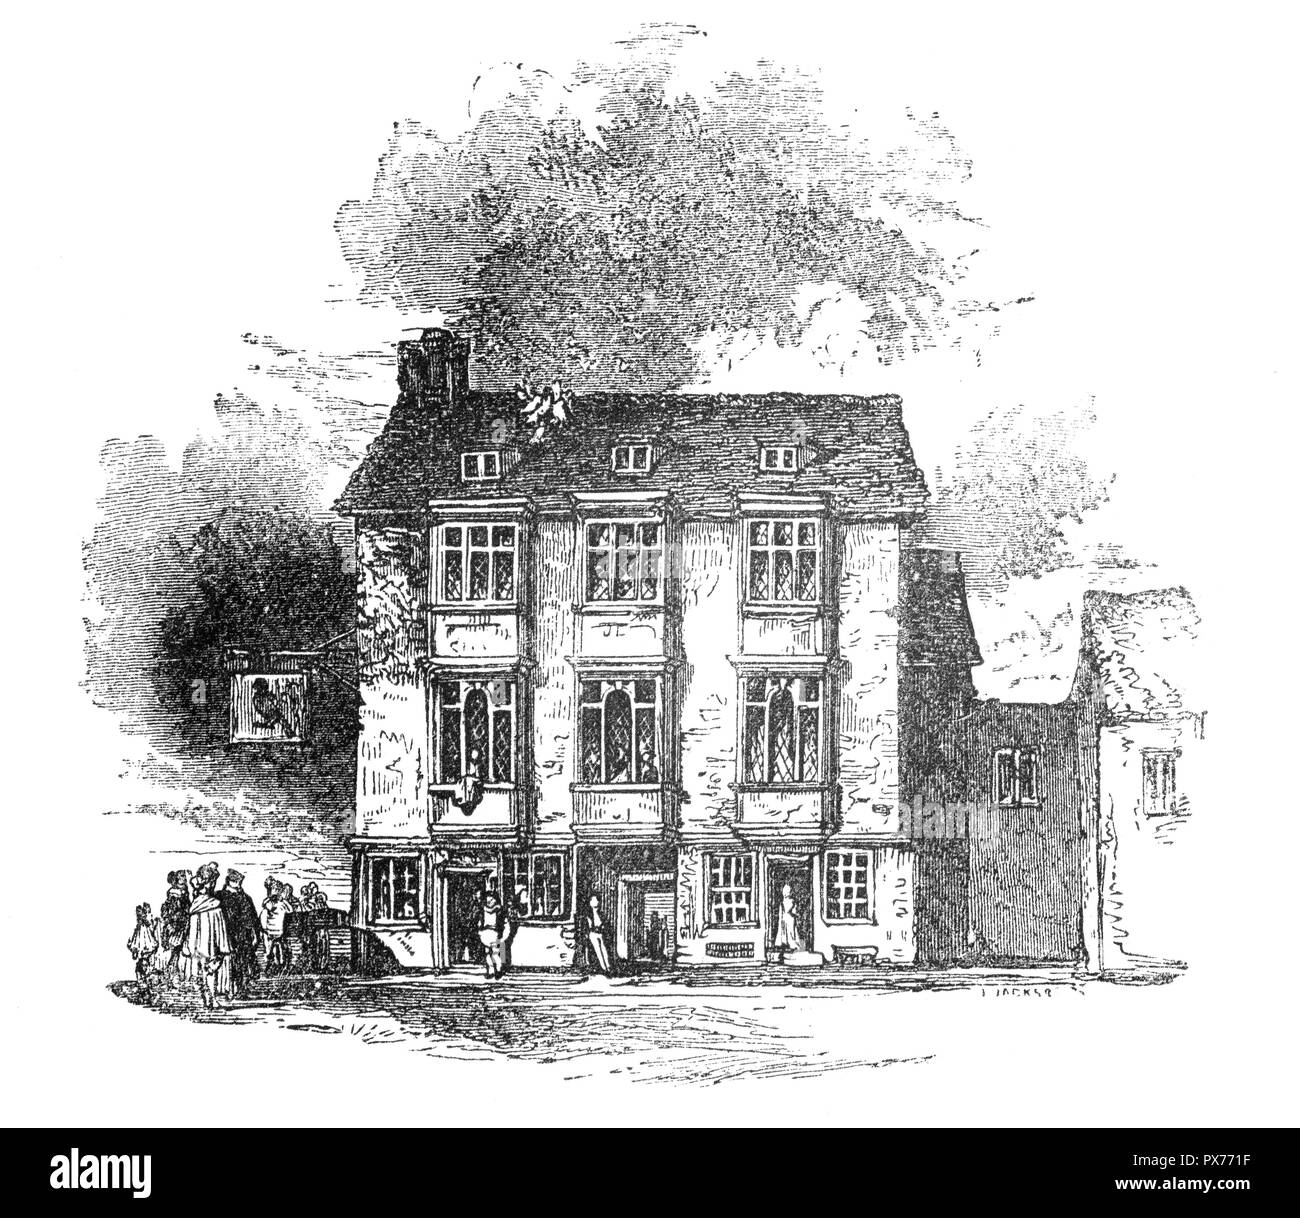 The Falcon Inn in Southwark, on the south bank of the Thames, London, England, was a house of great business and the place from whence coaches went to all parts of Kent, Surrey and Sussex.  The area was the entertainment centre of London during the Tudor and Stewart periods, every form of artistic pursuit, and vice, could be found here. Theatres such as the Rose, Swan, Globe and Hope sprang up  and playwrights of the stature of Marlowe and Shakespeare became celebrities and the Falcon became the daily resort of Shakespeare and his dramatic companions. - Stock Image